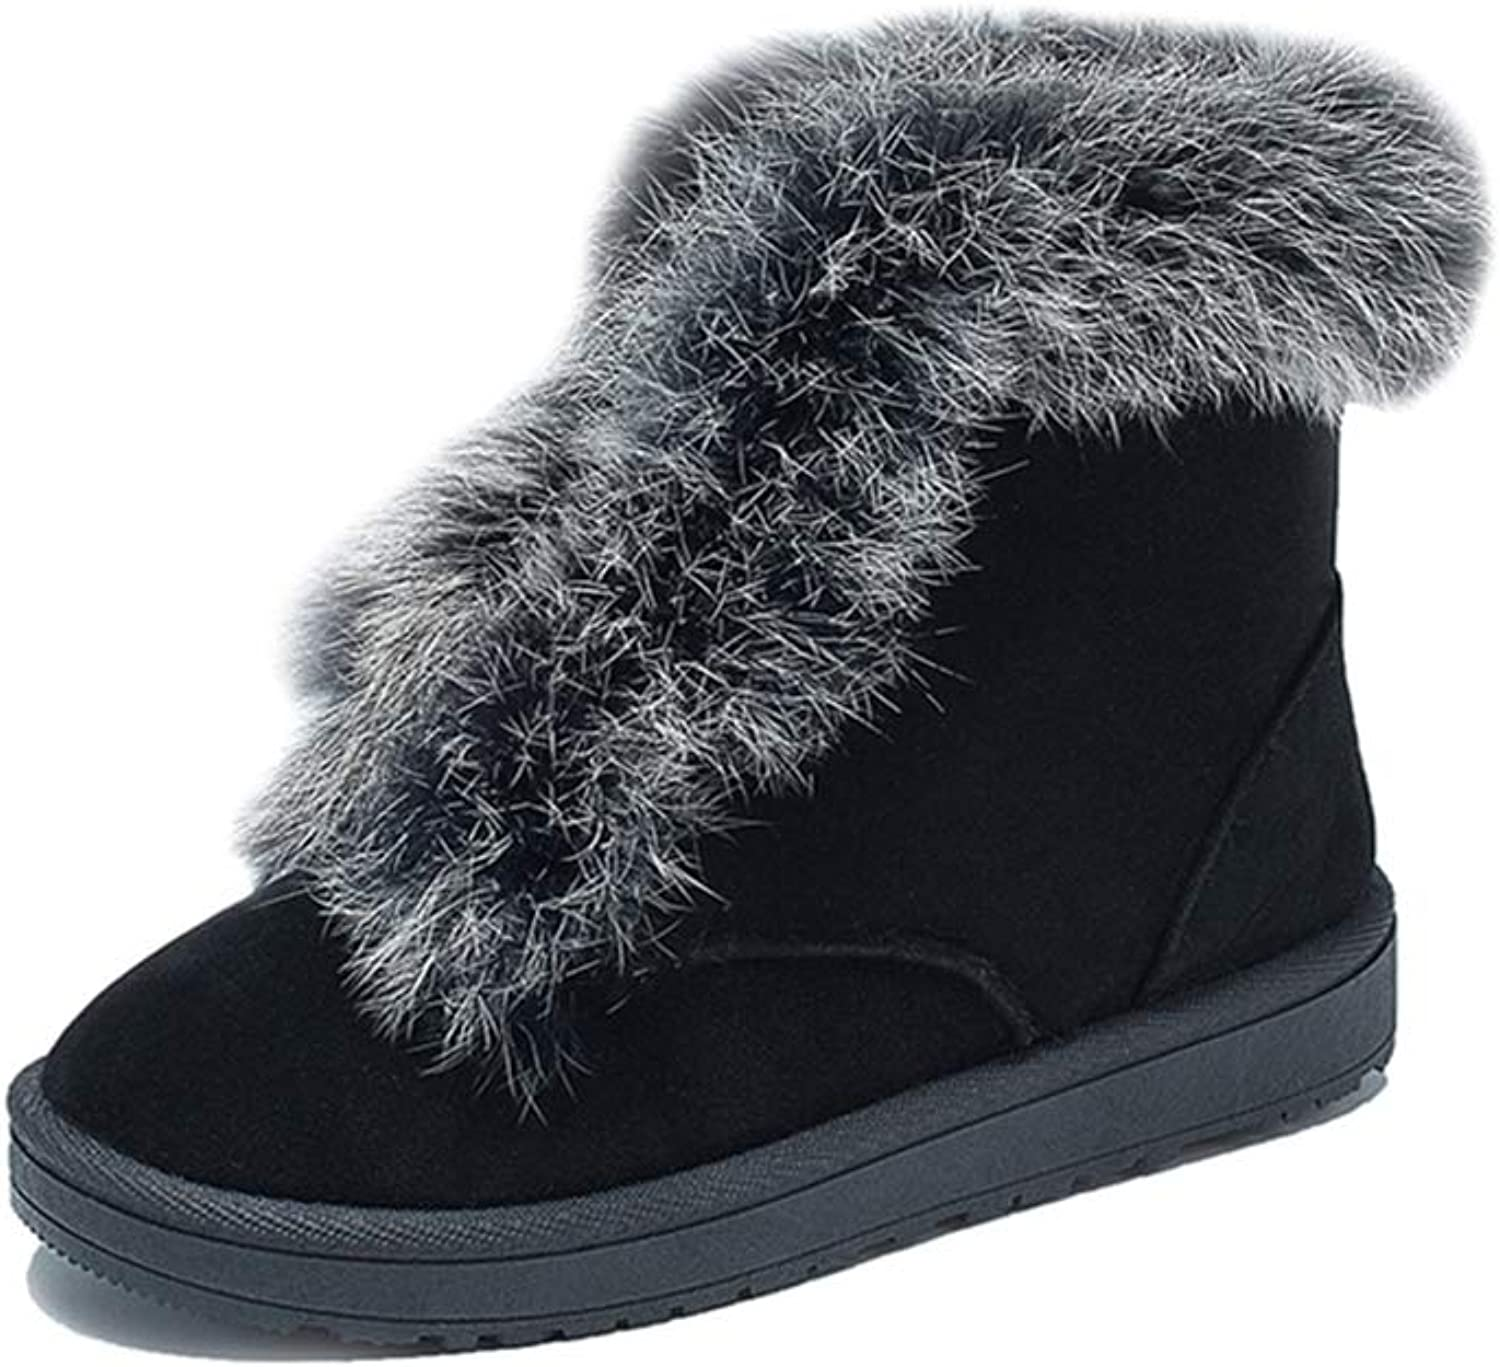 T-JULY New Winter Female Cotton Snow Boots Fashion Casual Ankle Boots Flock Black Plush Warm shoes